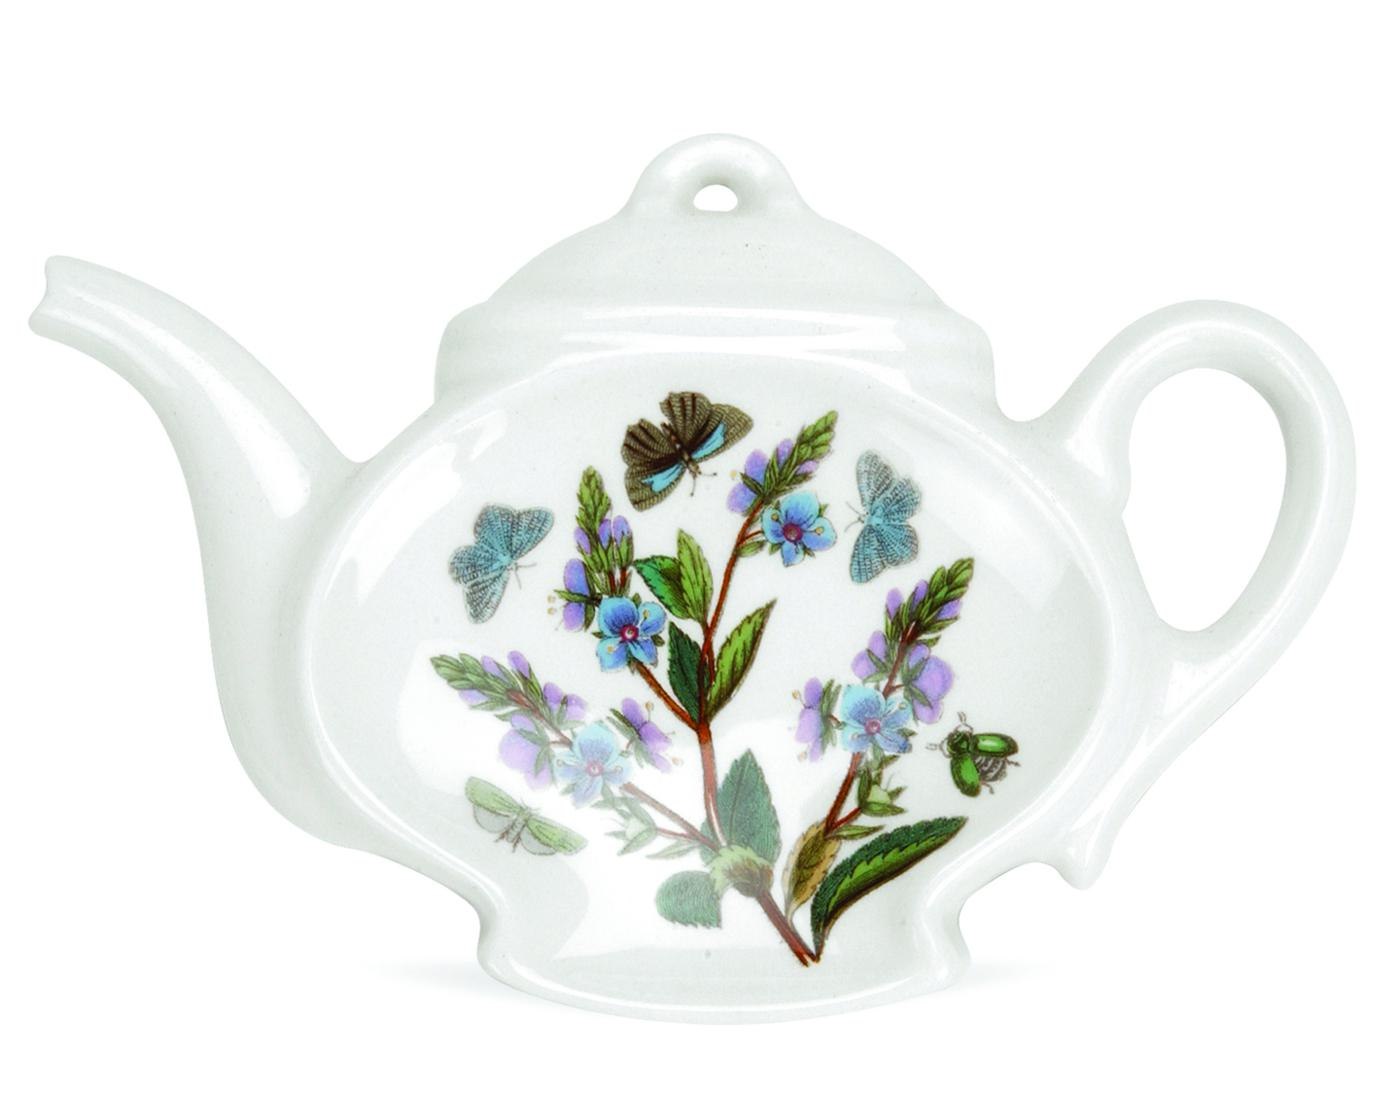 Botanic Garden 5.5 Inch Teapot Spoon Rest (Assorted Motifs) image number null